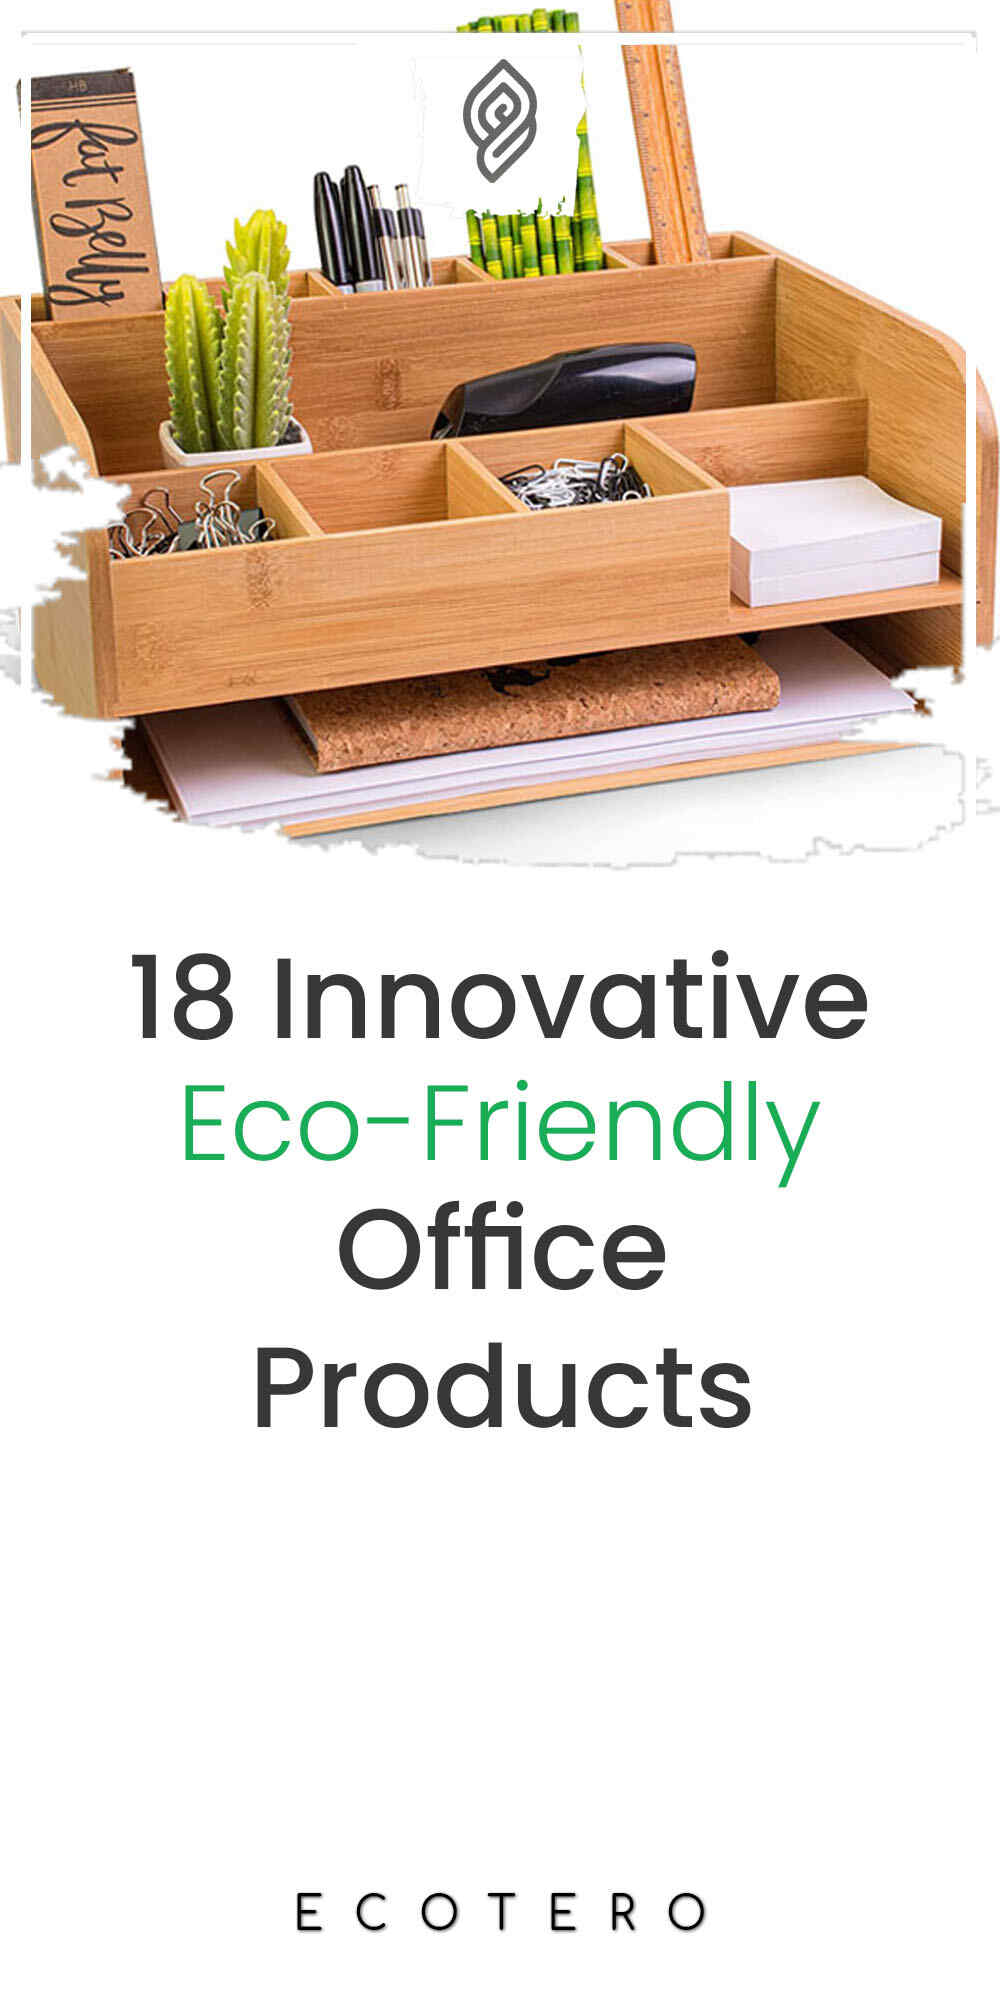 Eco-Friendly-Office-Products